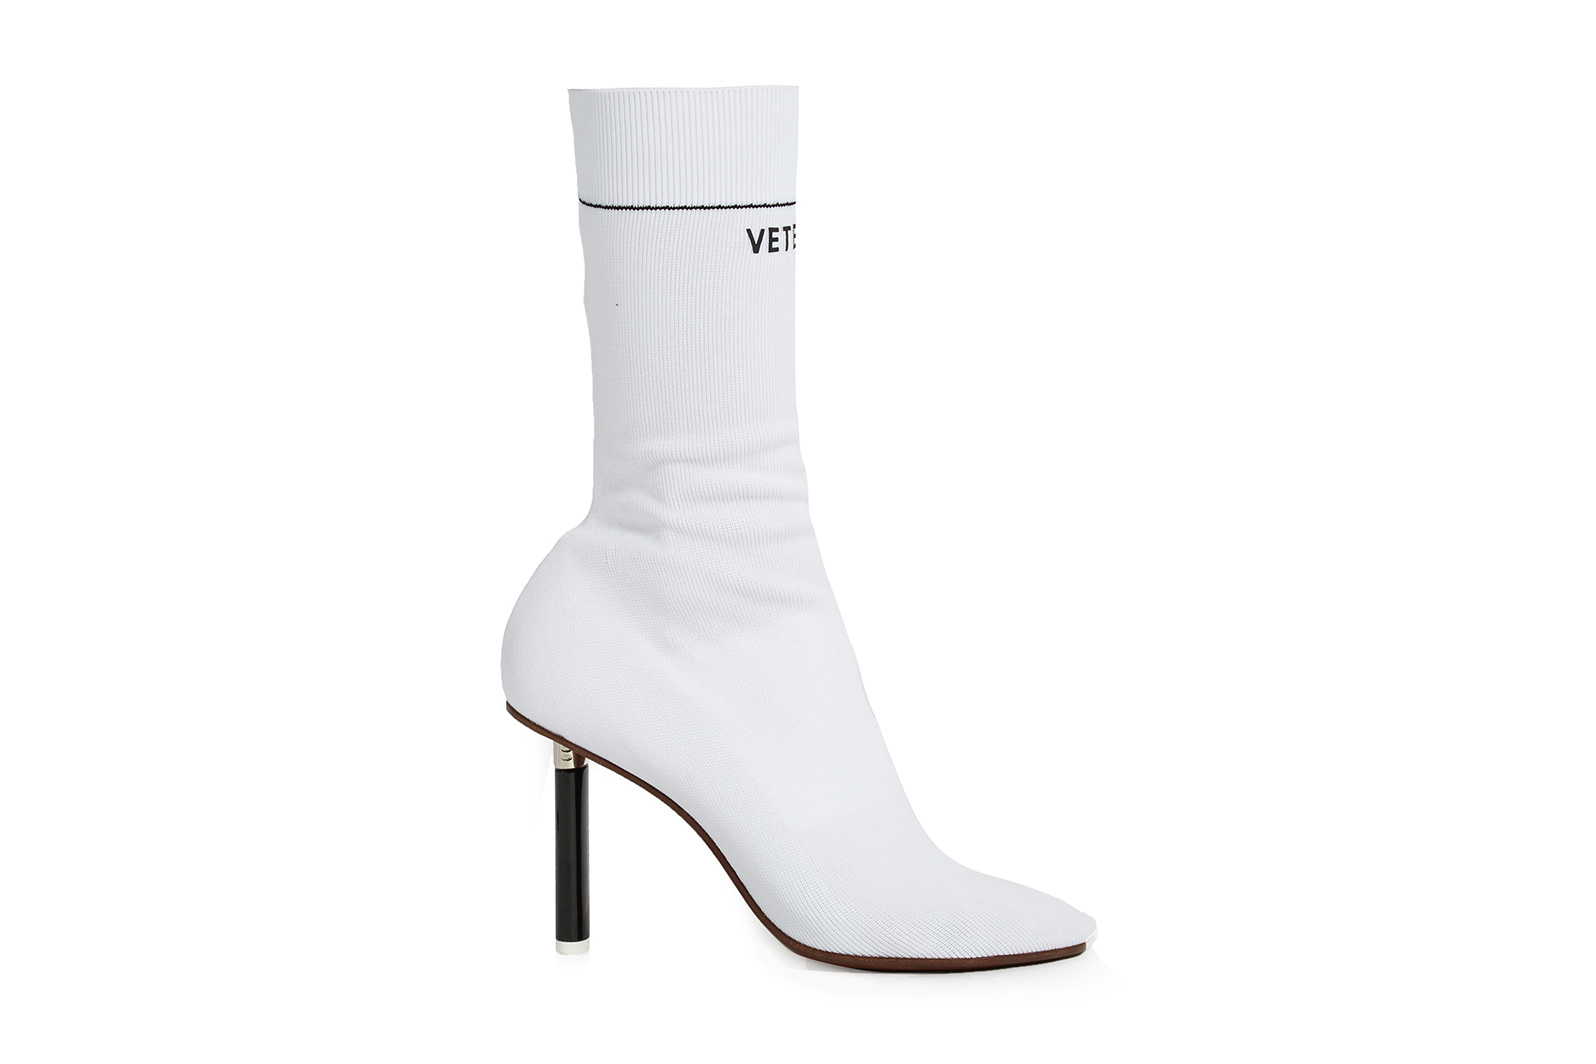 vetements-sock-ankle-boots-6